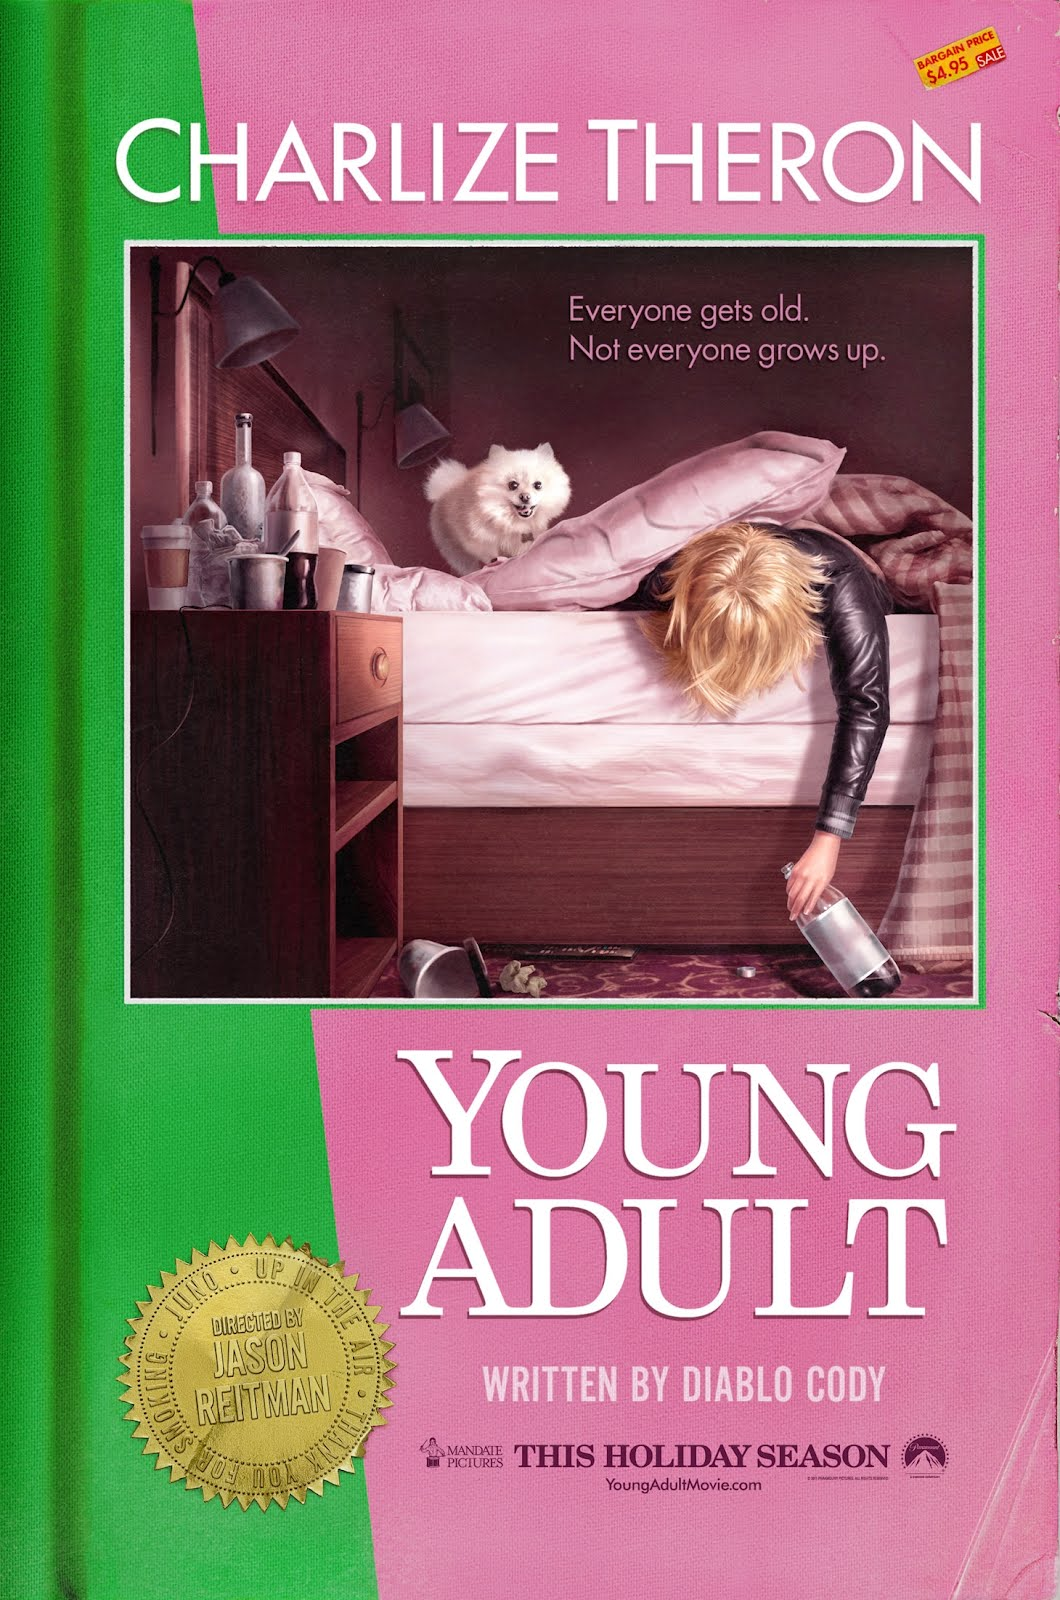 #4 -- Young Adult: I've always